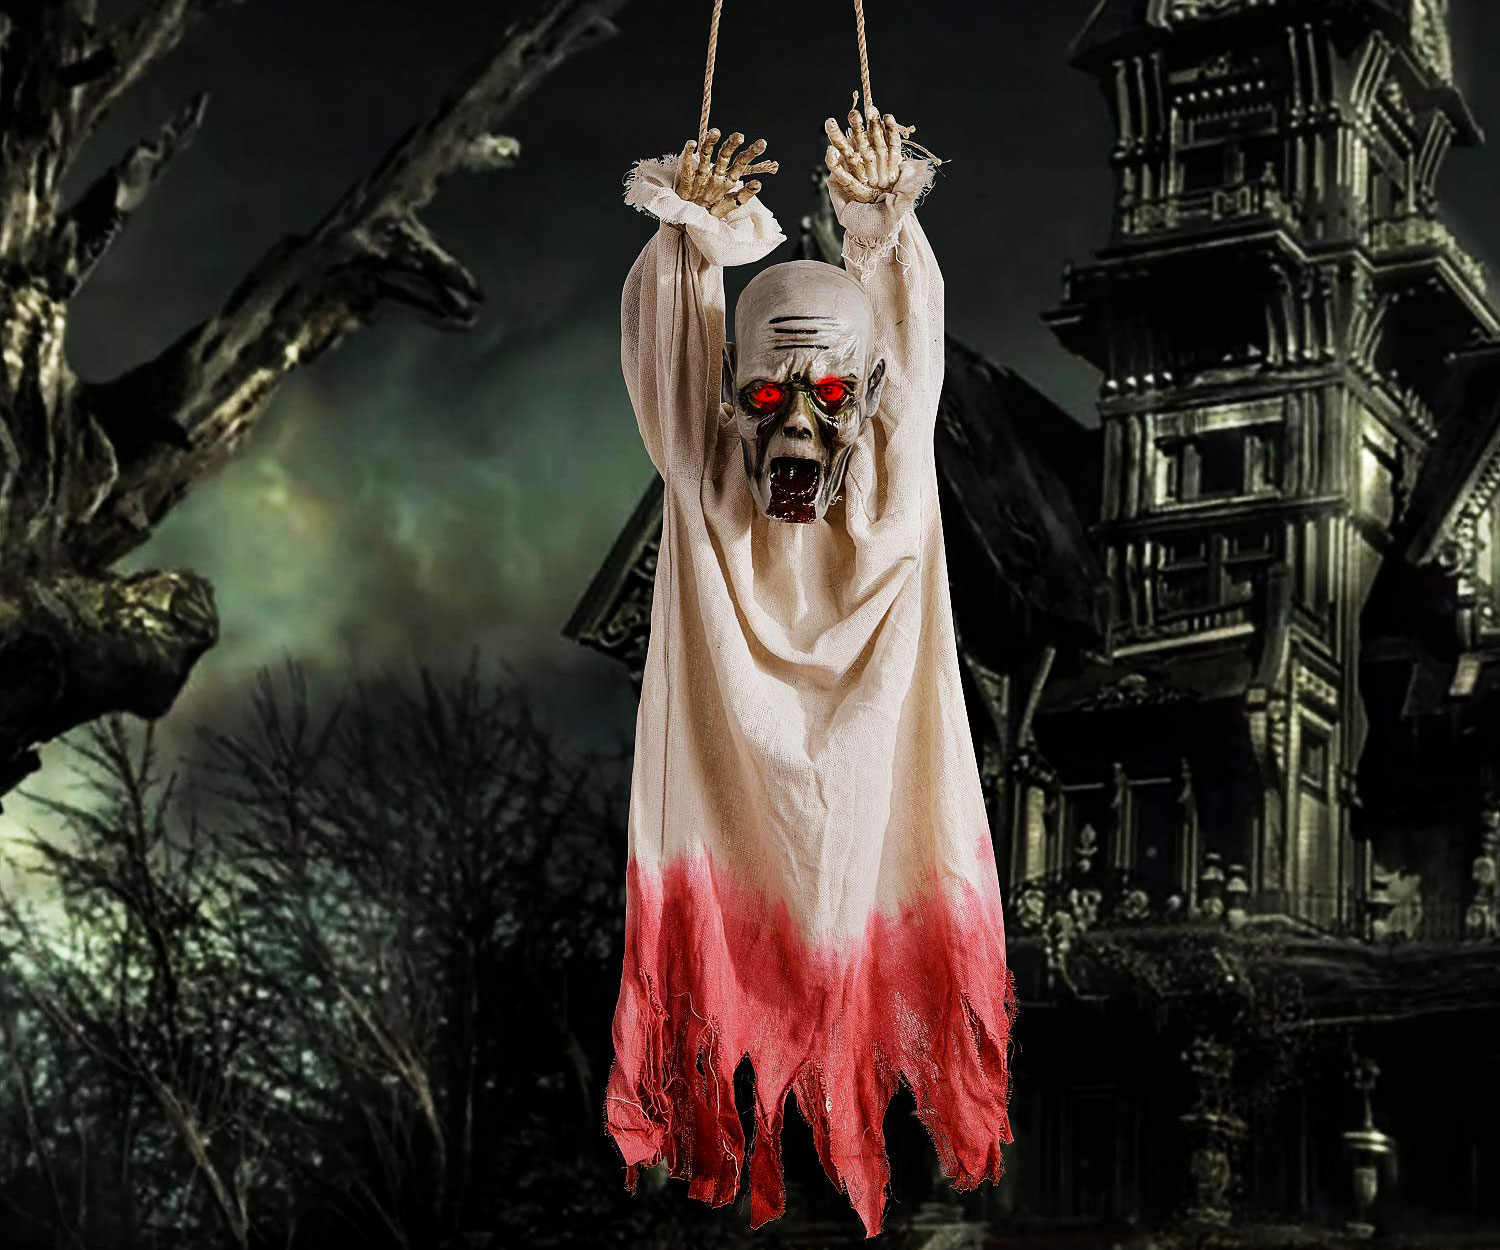 Animated Hanging Corpse - coolthings.us